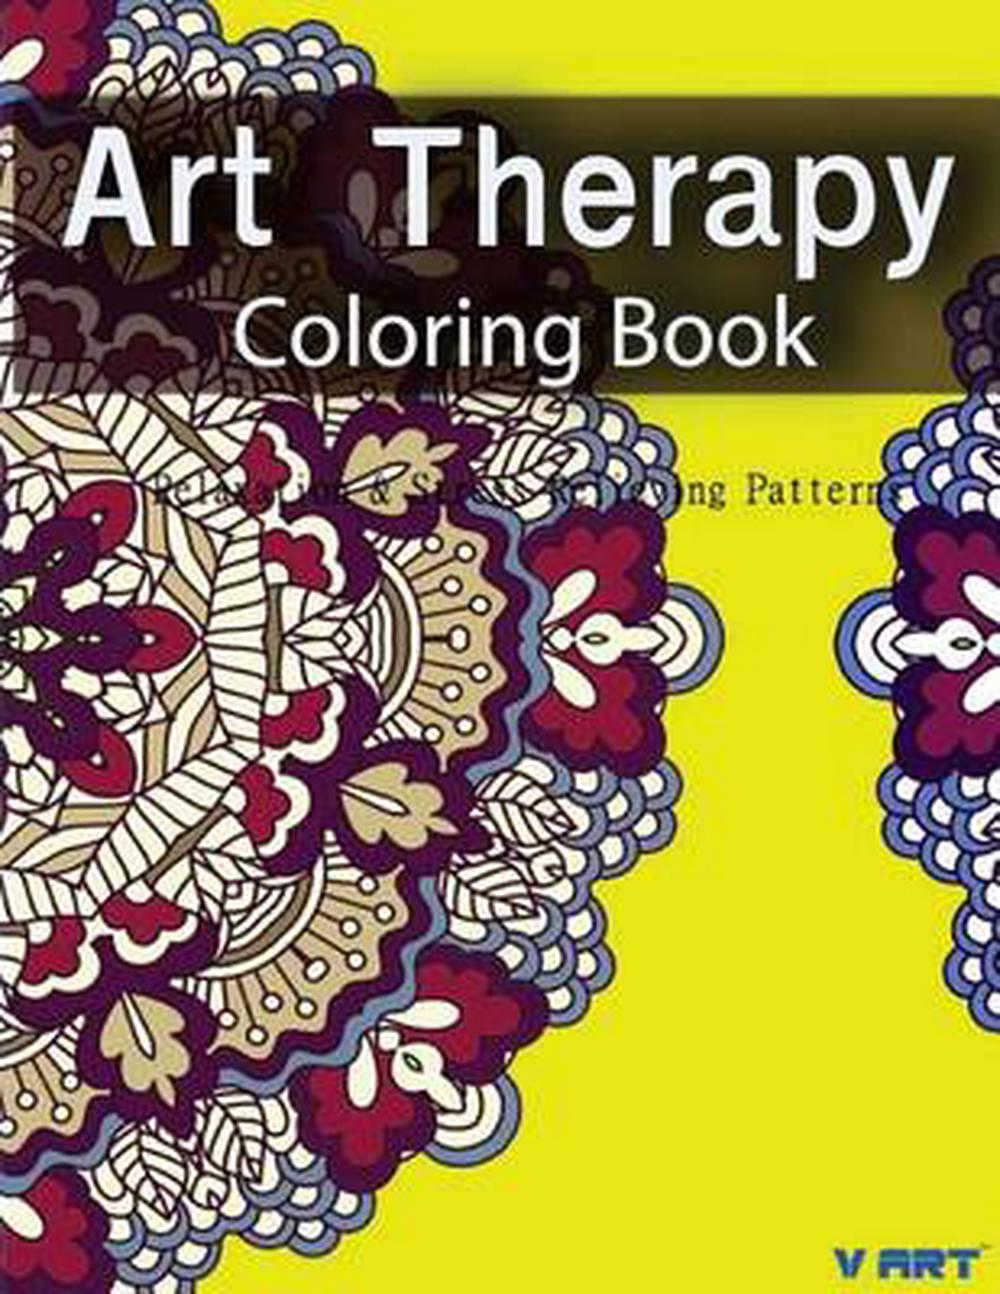 - Art Therapy Coloring Book: Art Therapy Coloring Books For Adults